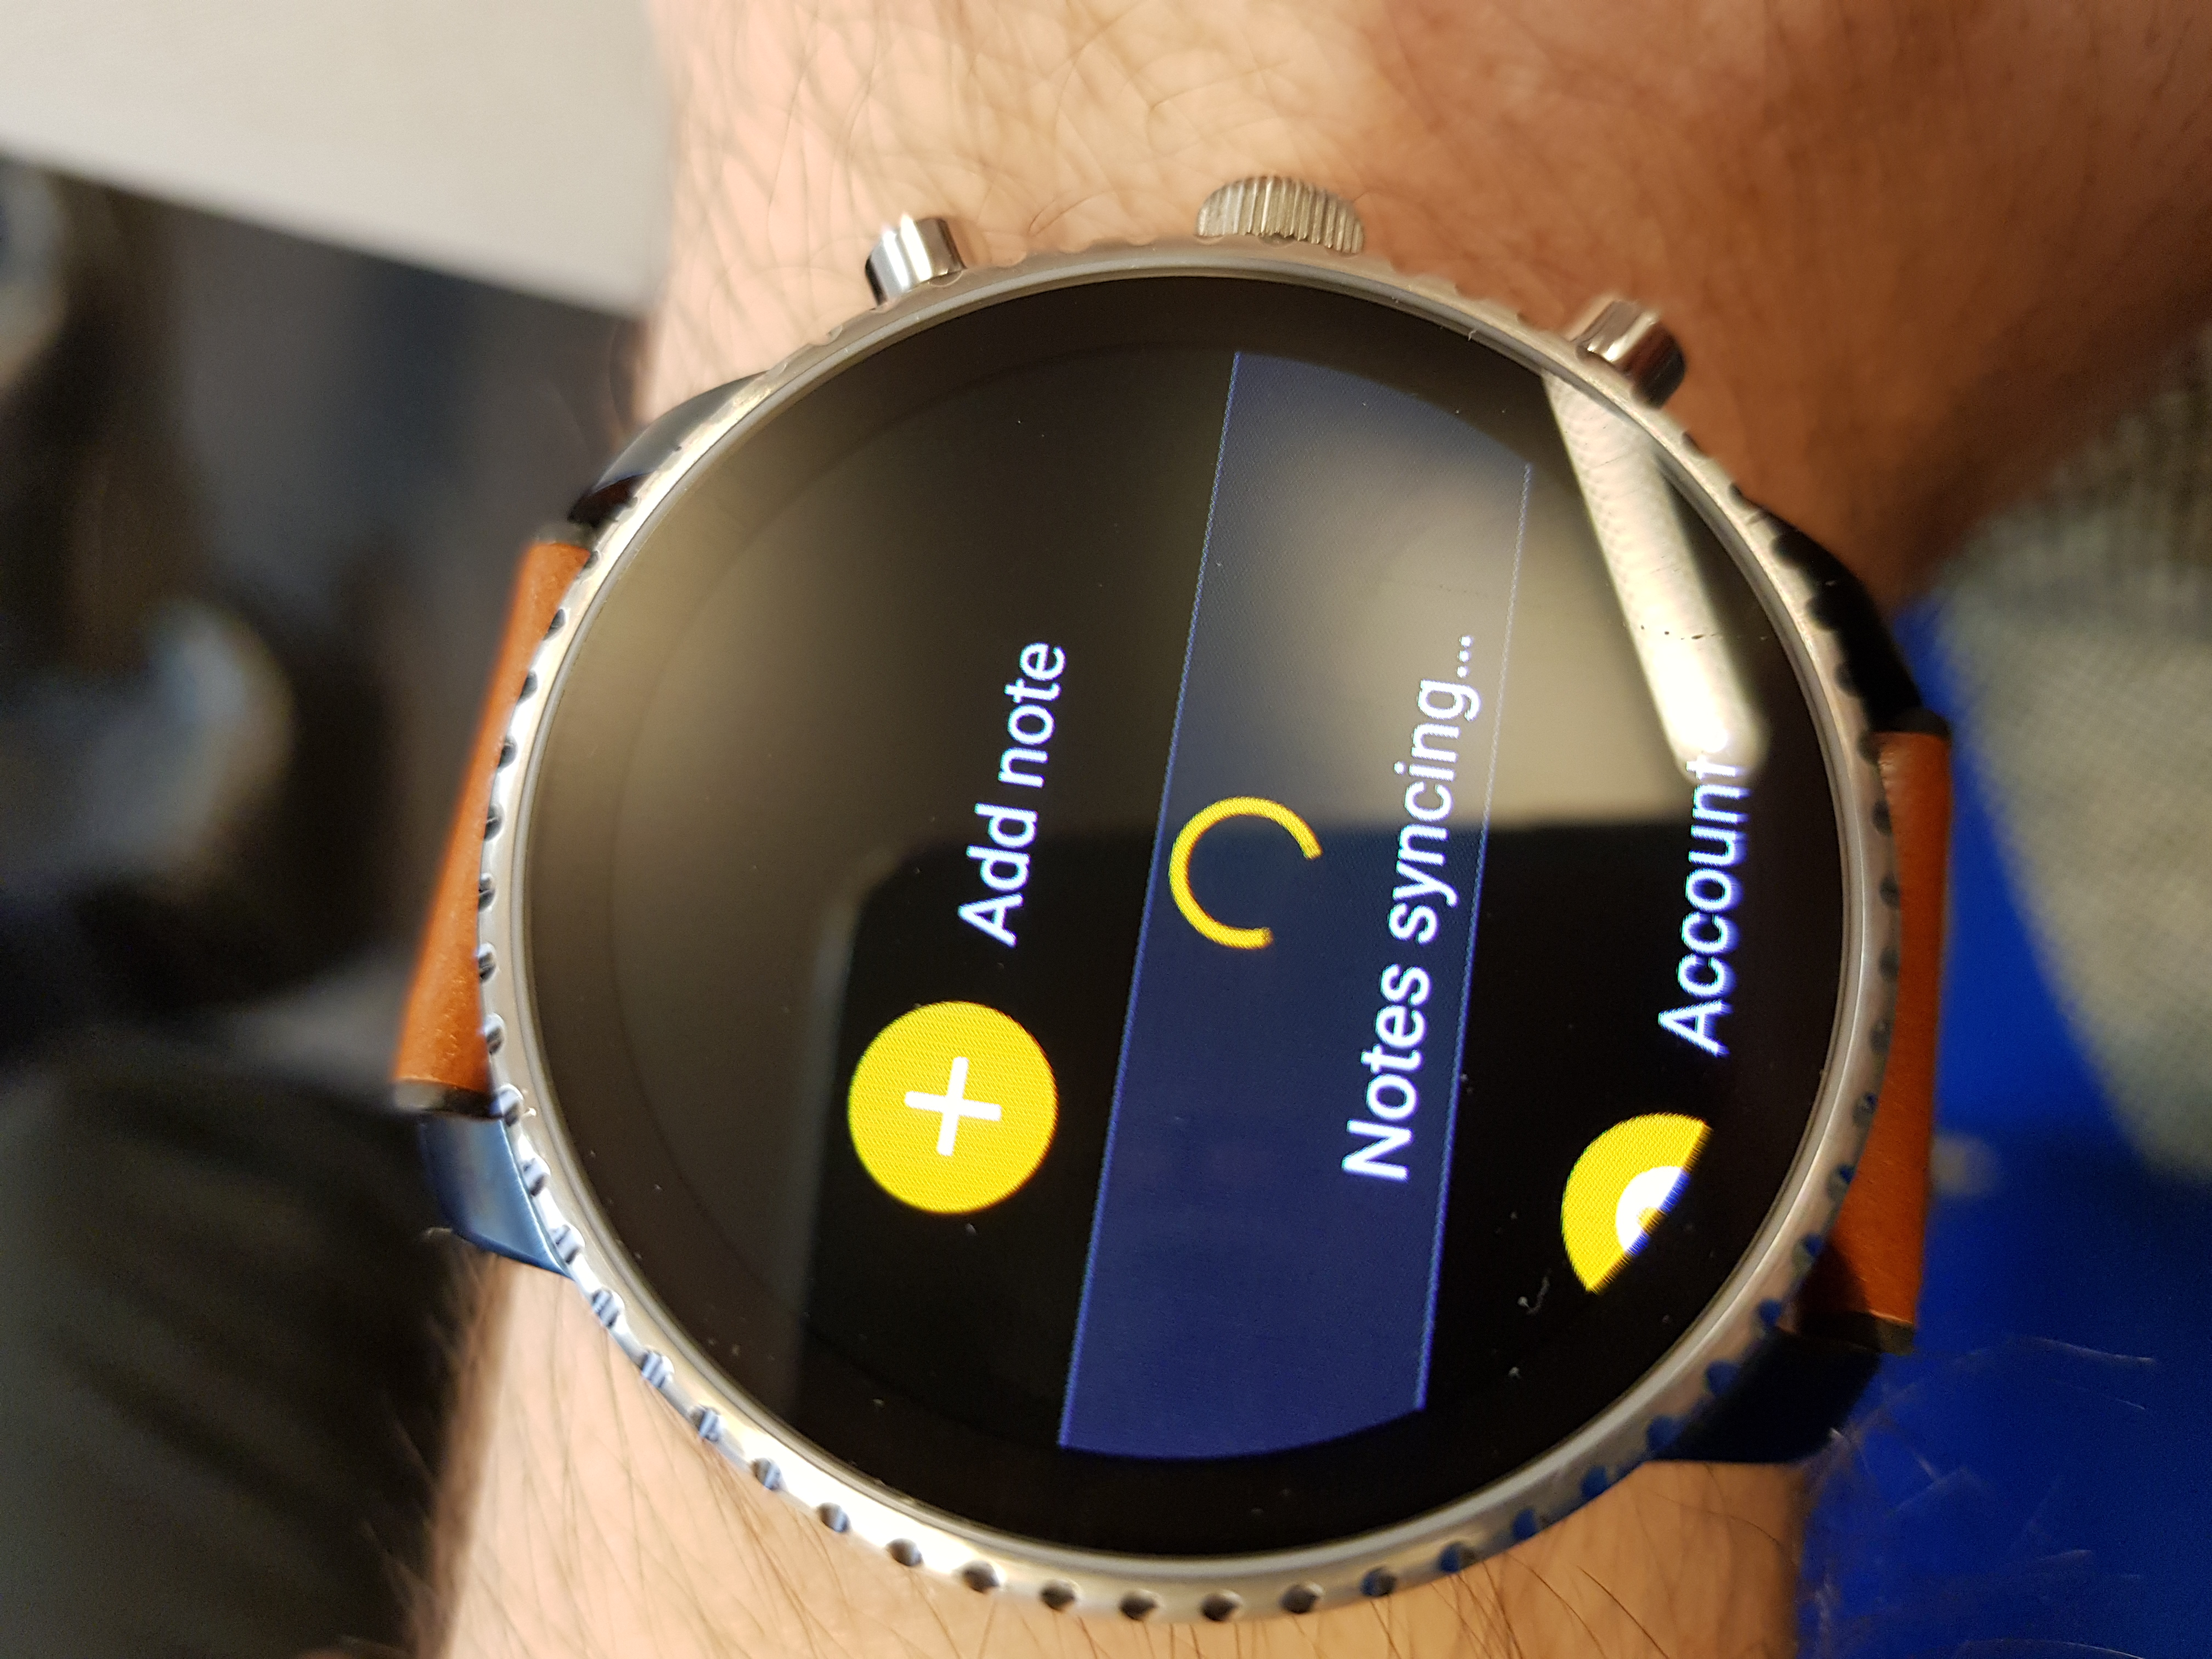 Google Keep syncing takes forever - Wear OS by Google Help